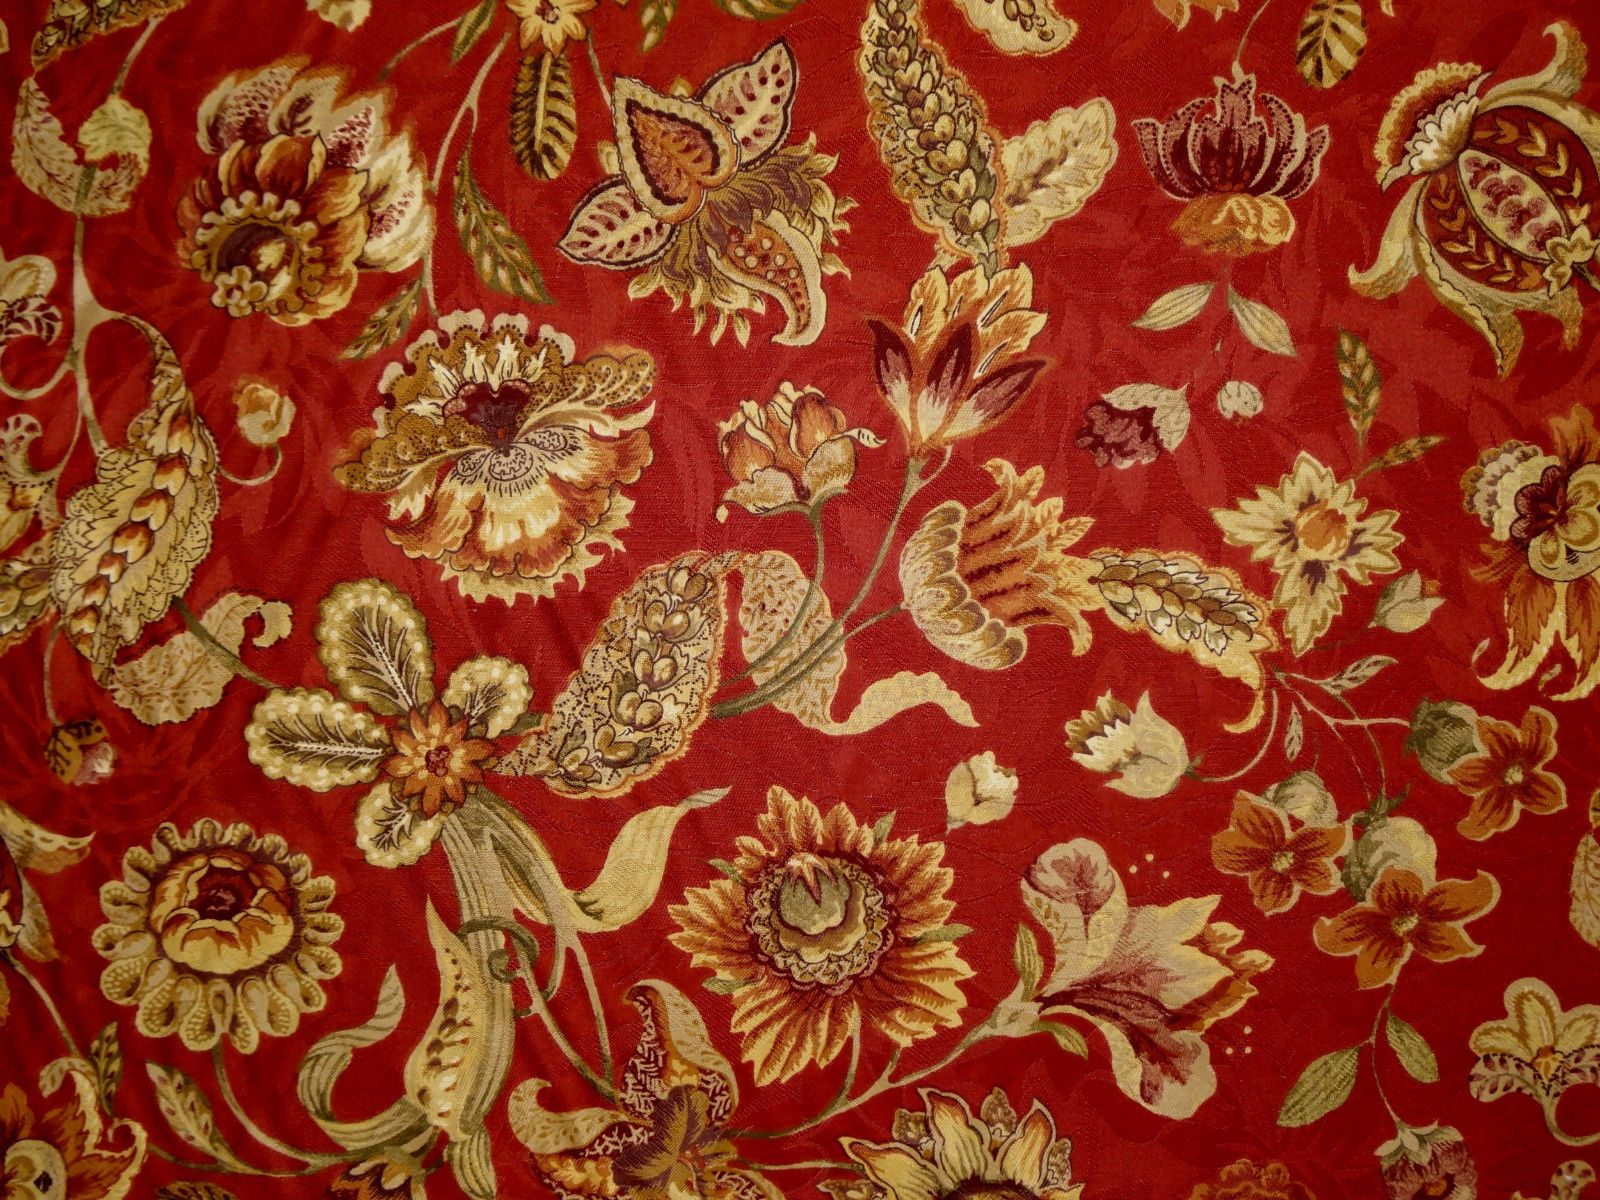 1 Yard Mill Creek Raymond Waites Jacobean Floral BRICK Drapery